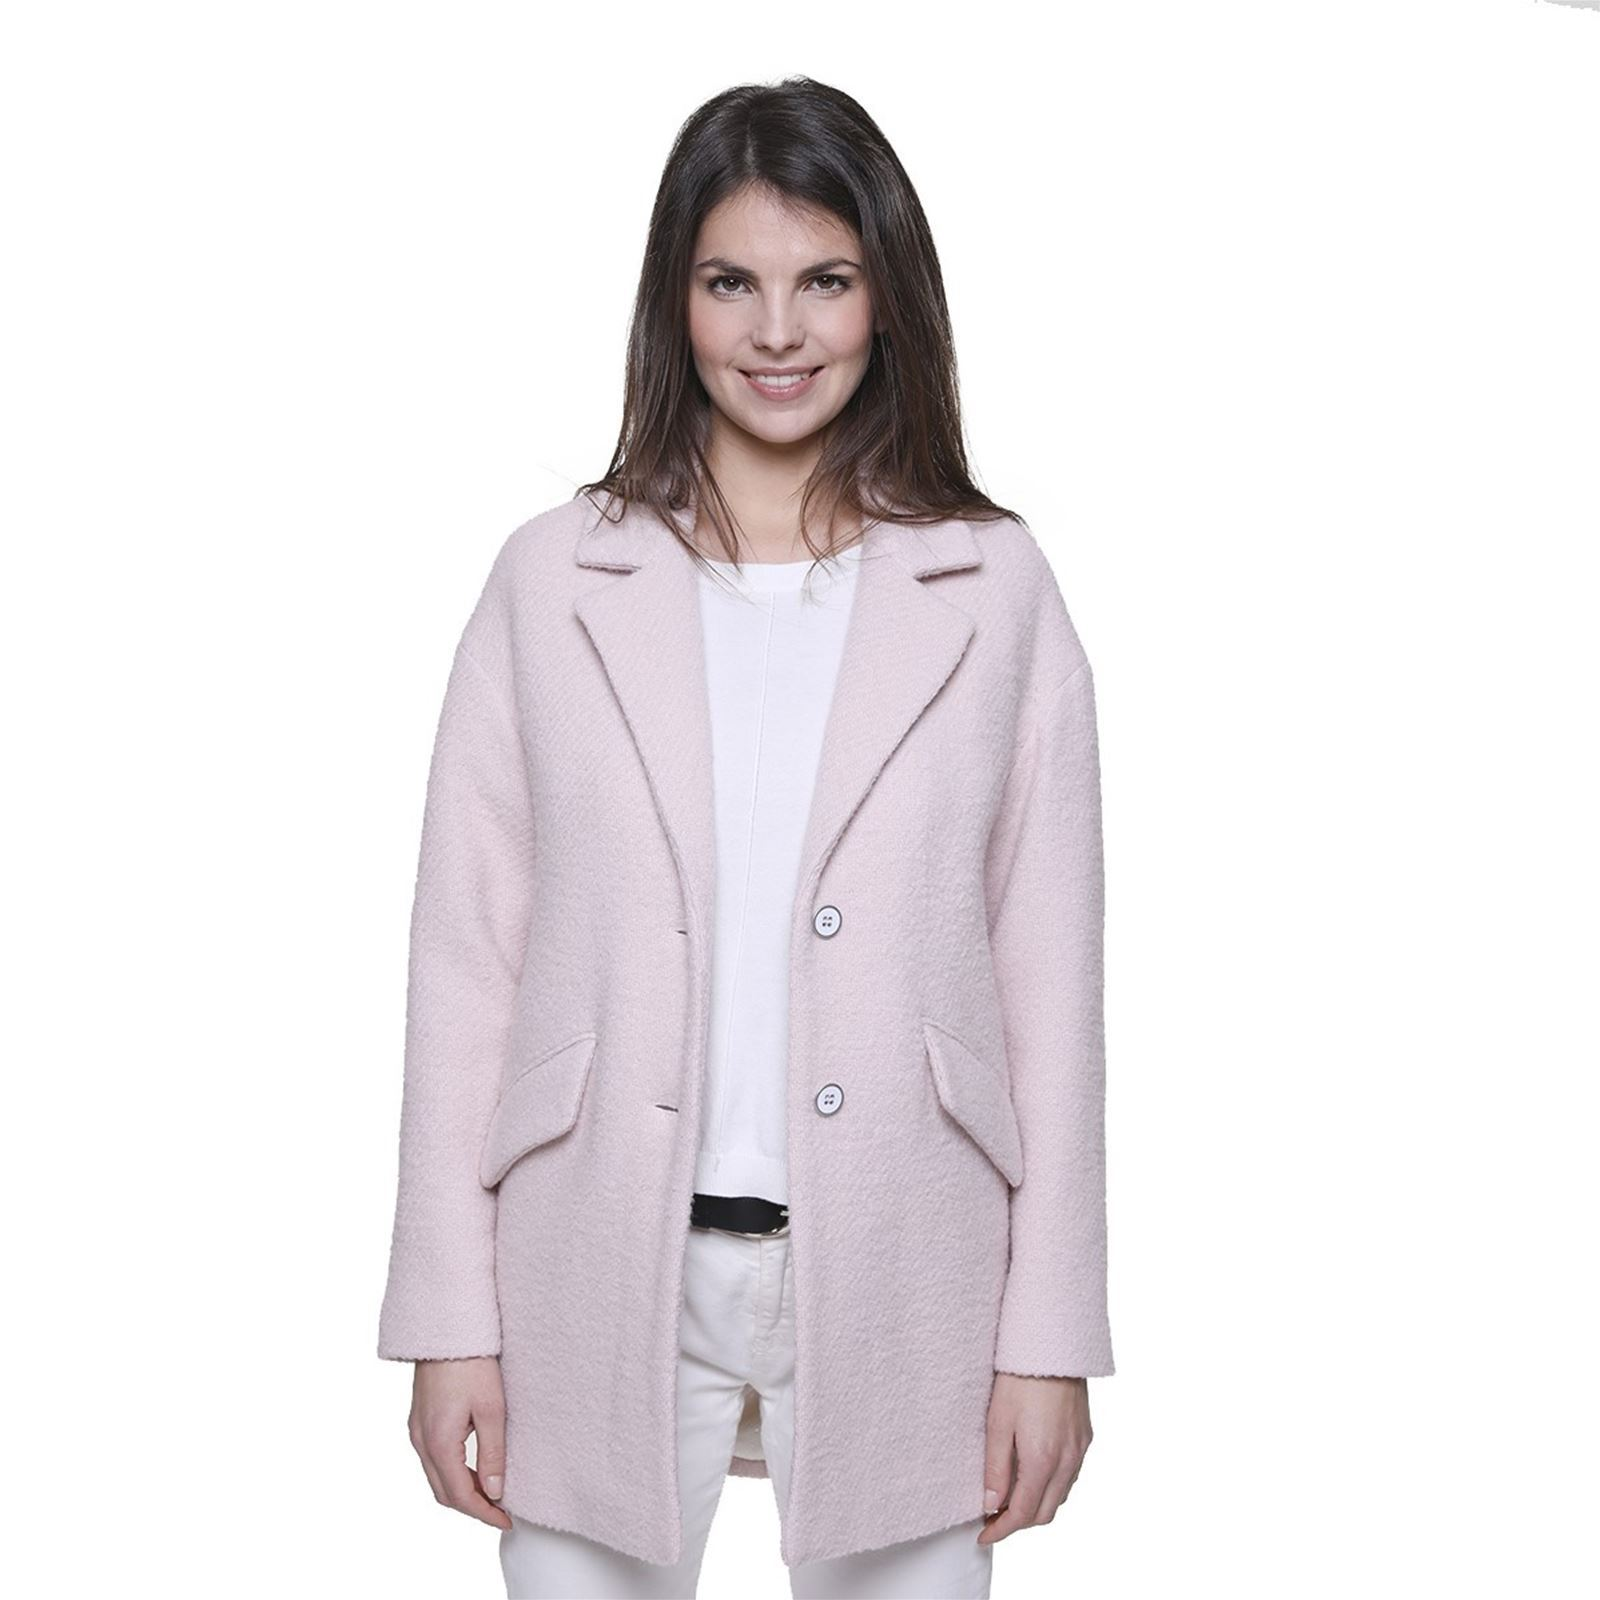 Rose Trench Manteau Coat Brandalley Bouclée Oversize And 60 Laine AAgqK0